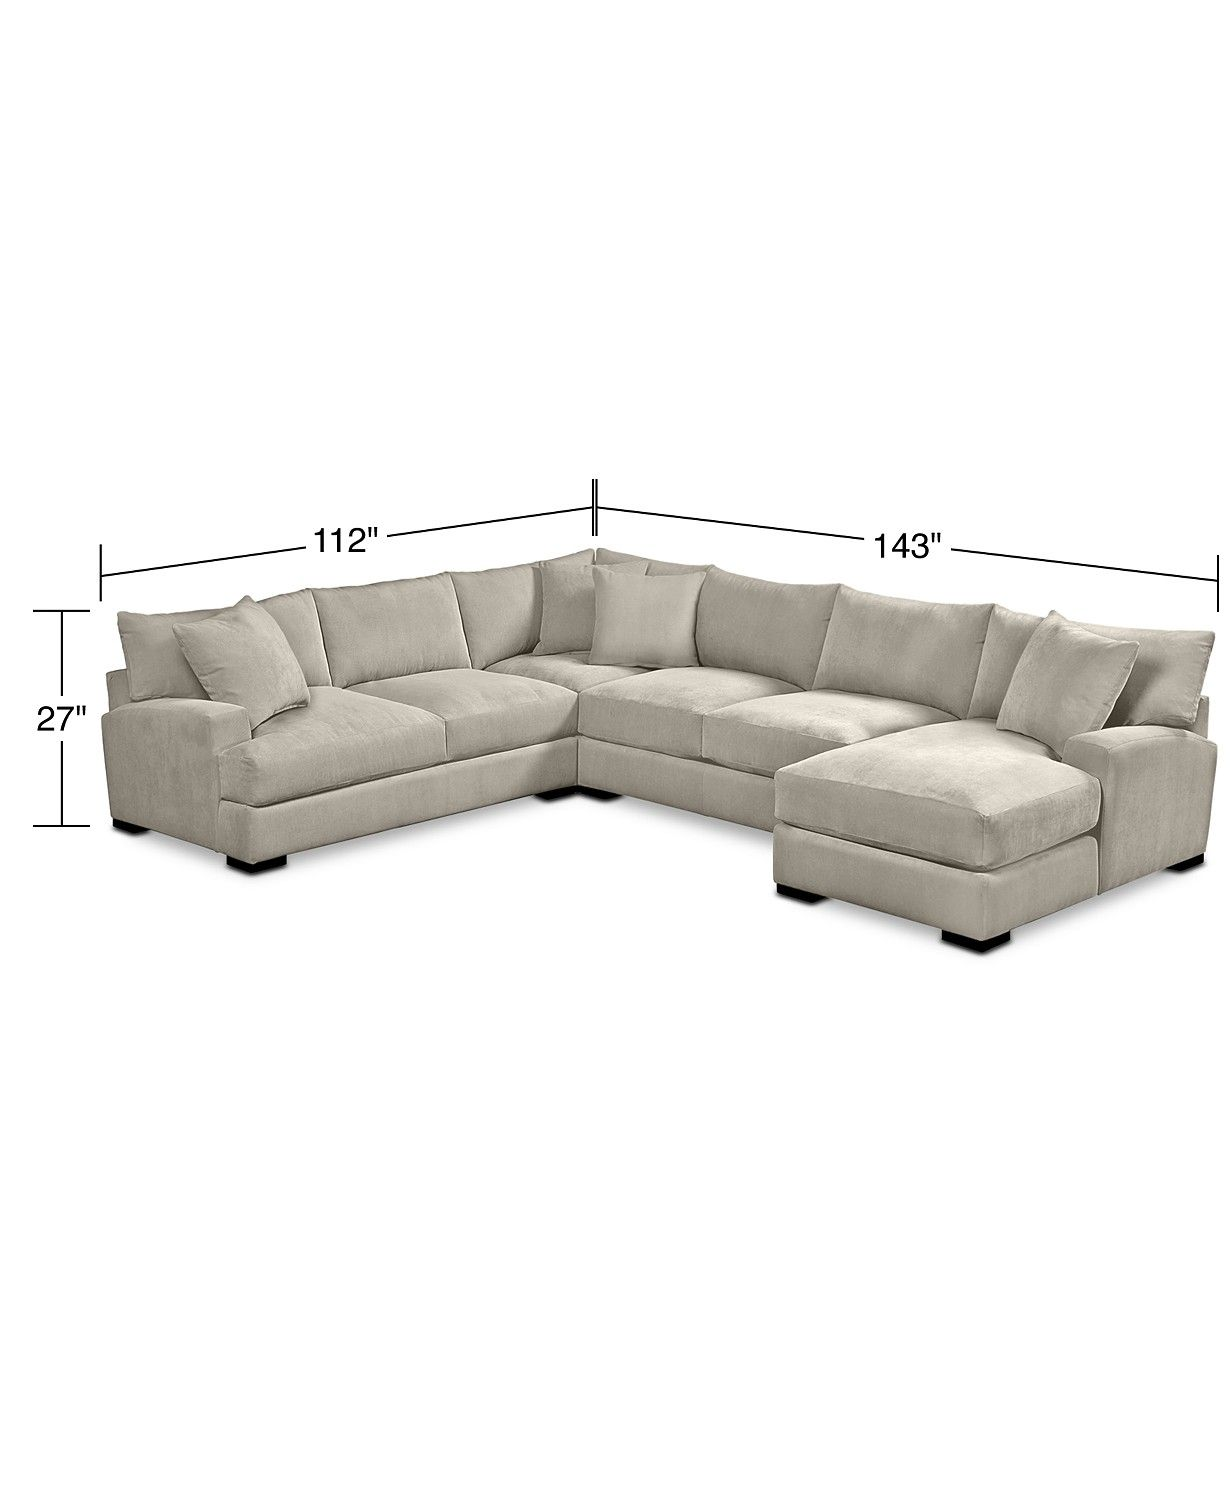 Furniture Rhyder 4 Pc 112 Fabric Sectional Sofa With Chaise Created For Macy S Reviews Furniture Macy S Sectional Sofa With Chaise Fabric Sectional Sofas Furniture